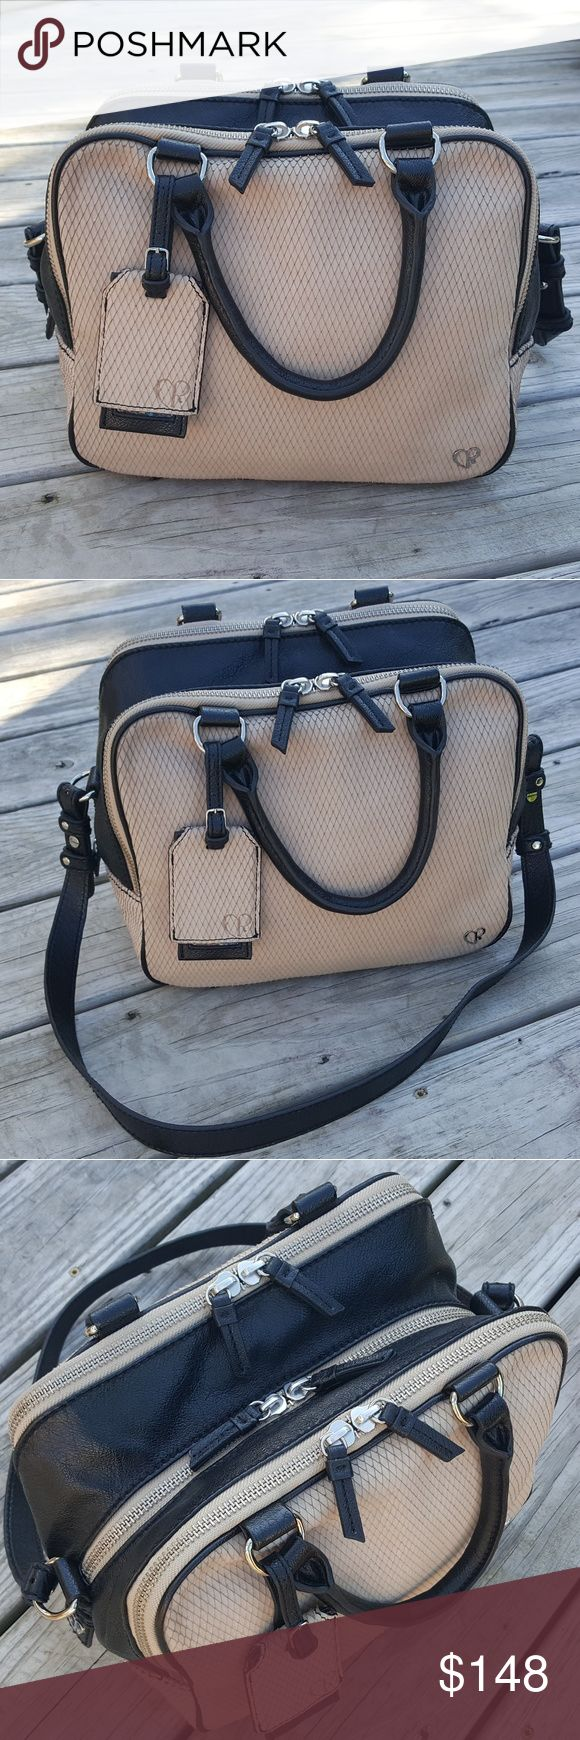 Charlotte Ronson Triple Diamond Leather Satchel This gorgeous leather satchel features black leather and tan suede with a cut diamond pattern. It has 3 large compartments to keep everything organized and a luggage tag accent. It also comes with the original Charlotte Ronson card. It is in good pre-owned condition with only minor signs of wear. As you can see in the last set of photos there is some slight discoloration around some of the edges and some very small black spots on the back of…